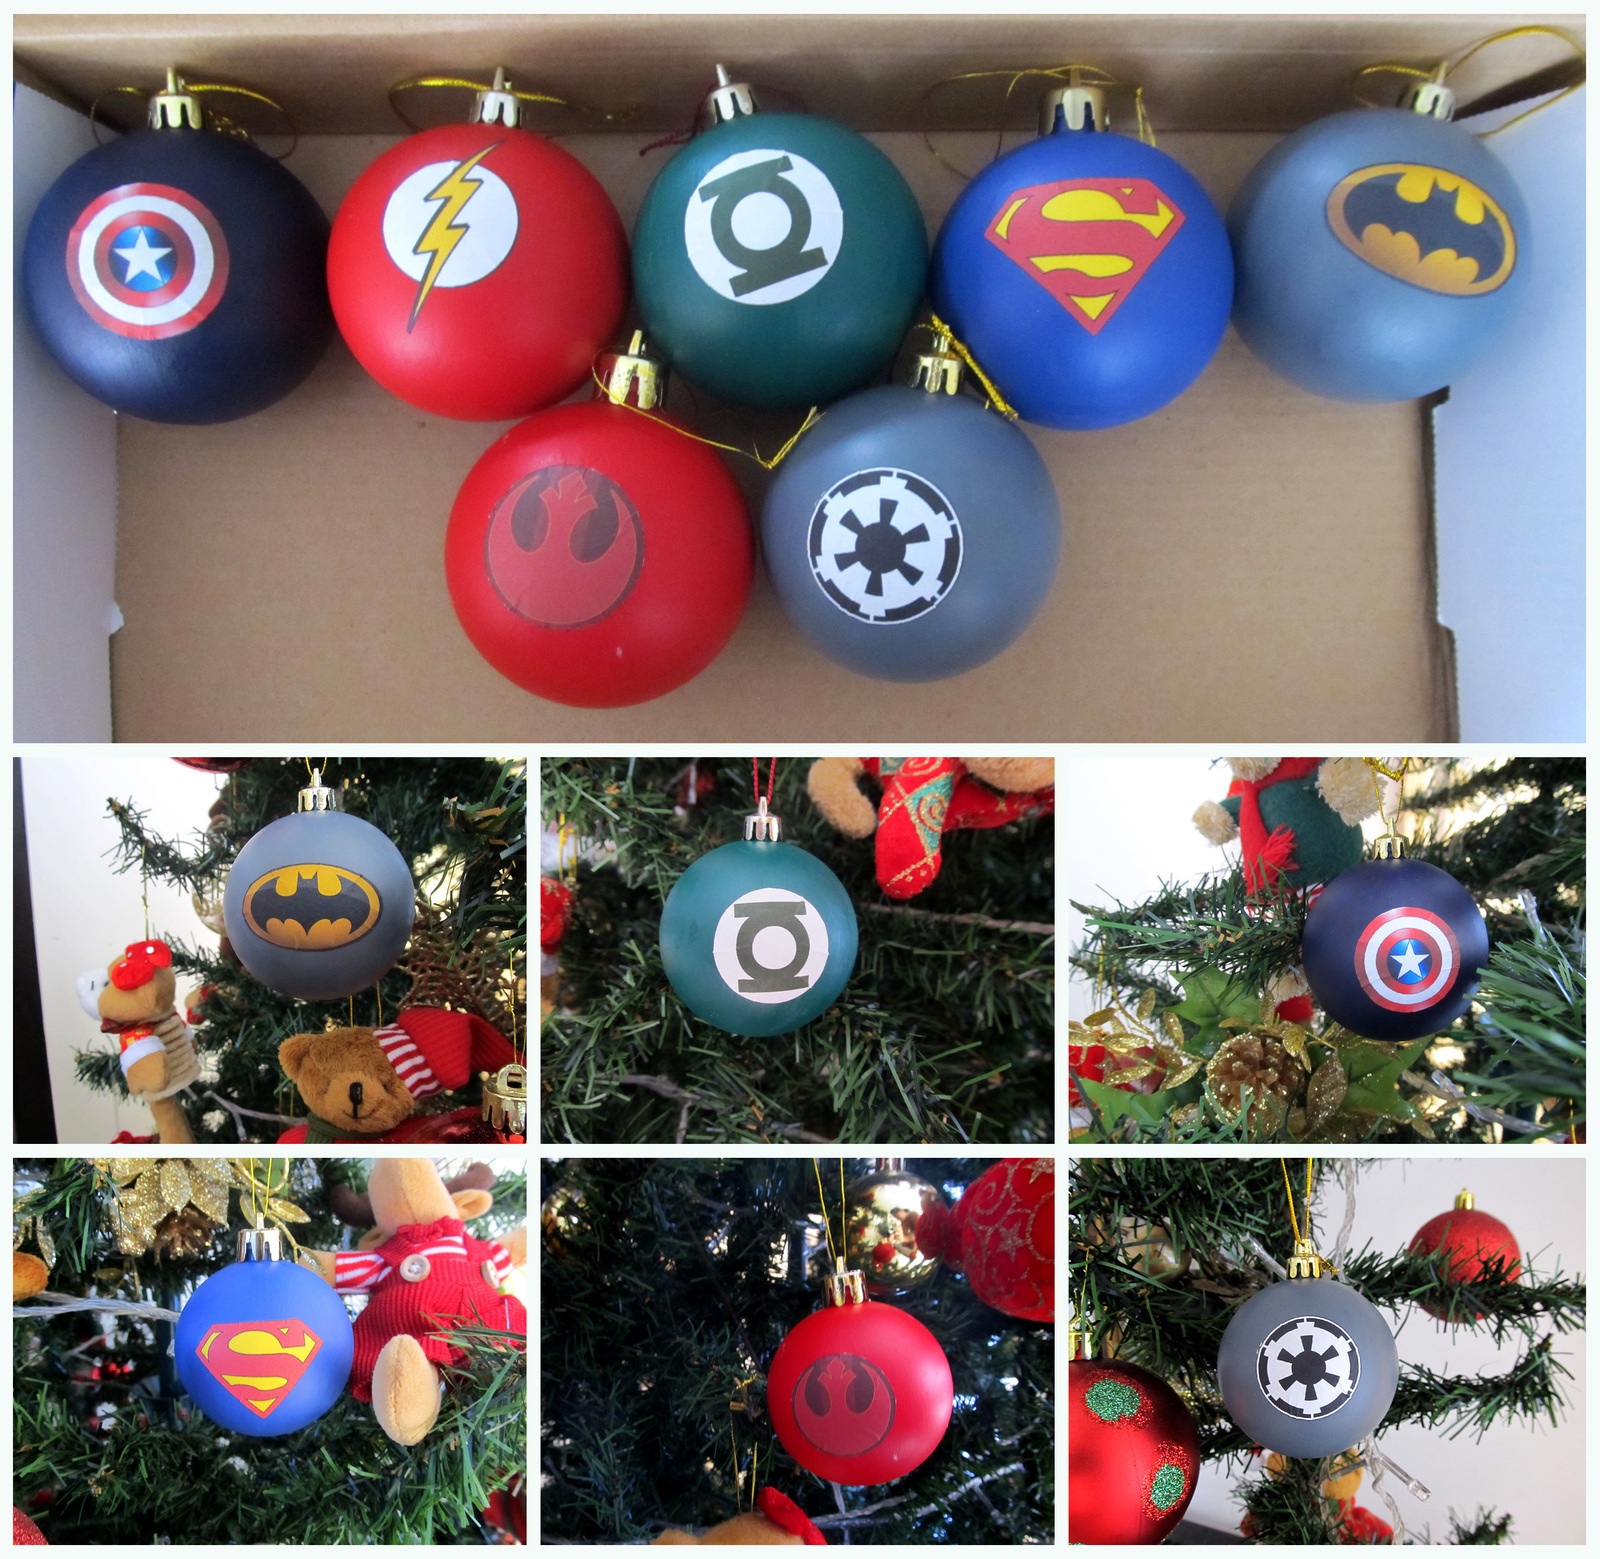 Geek Christmas Balls · A Bauble · Creation by Lufe Soto